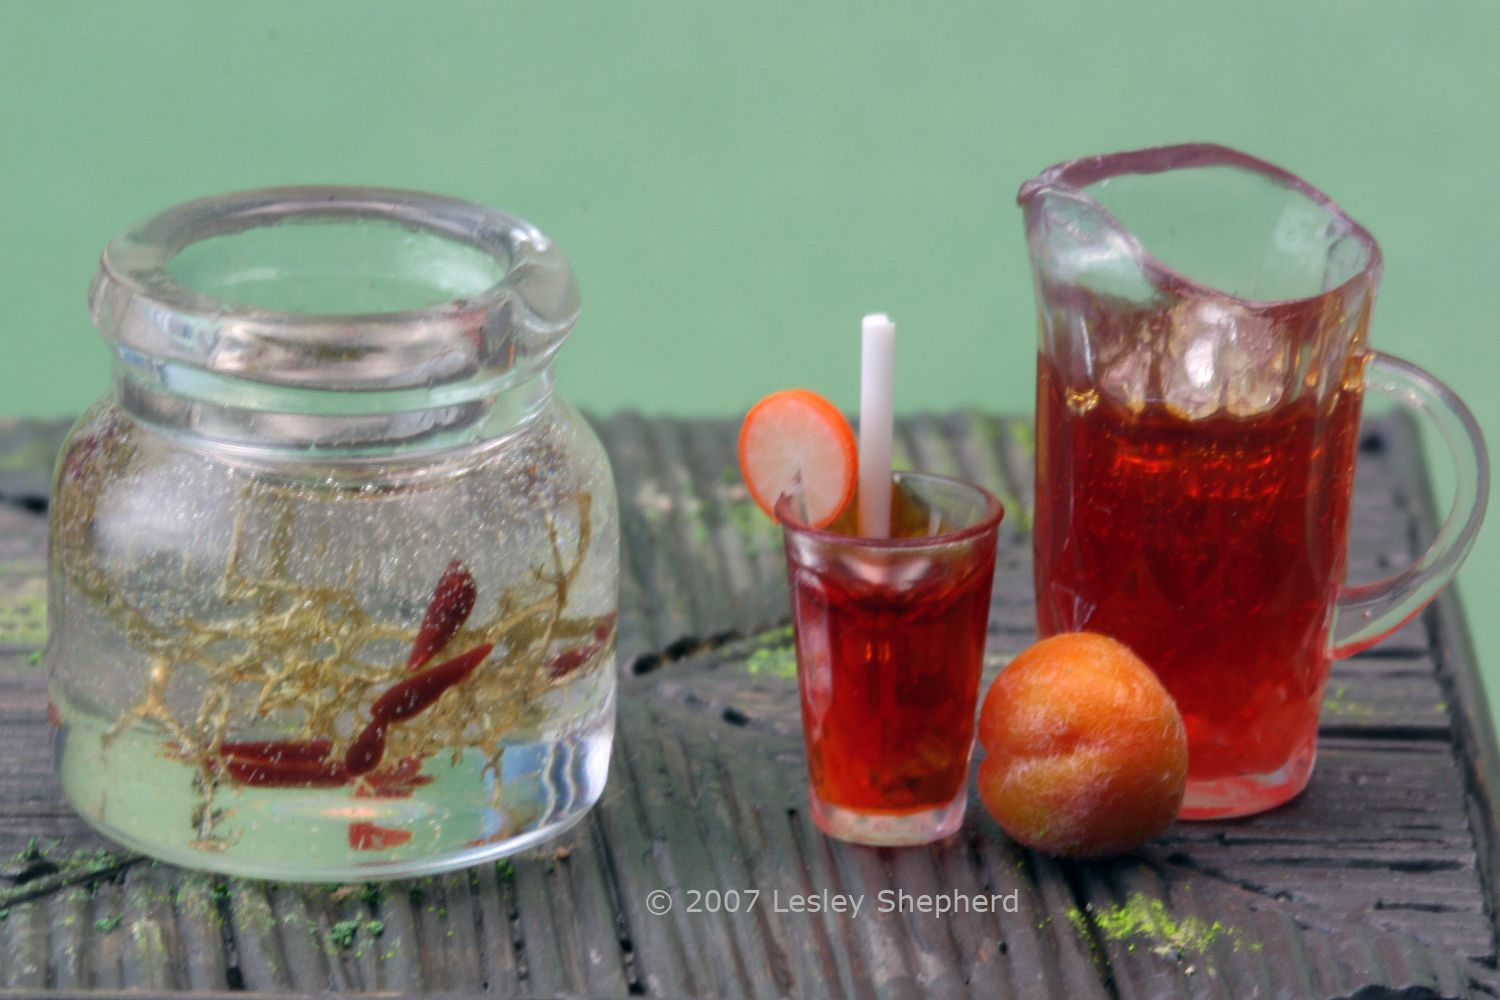 Miniature drinks and tadpoles in a jar made using epoxy resin.